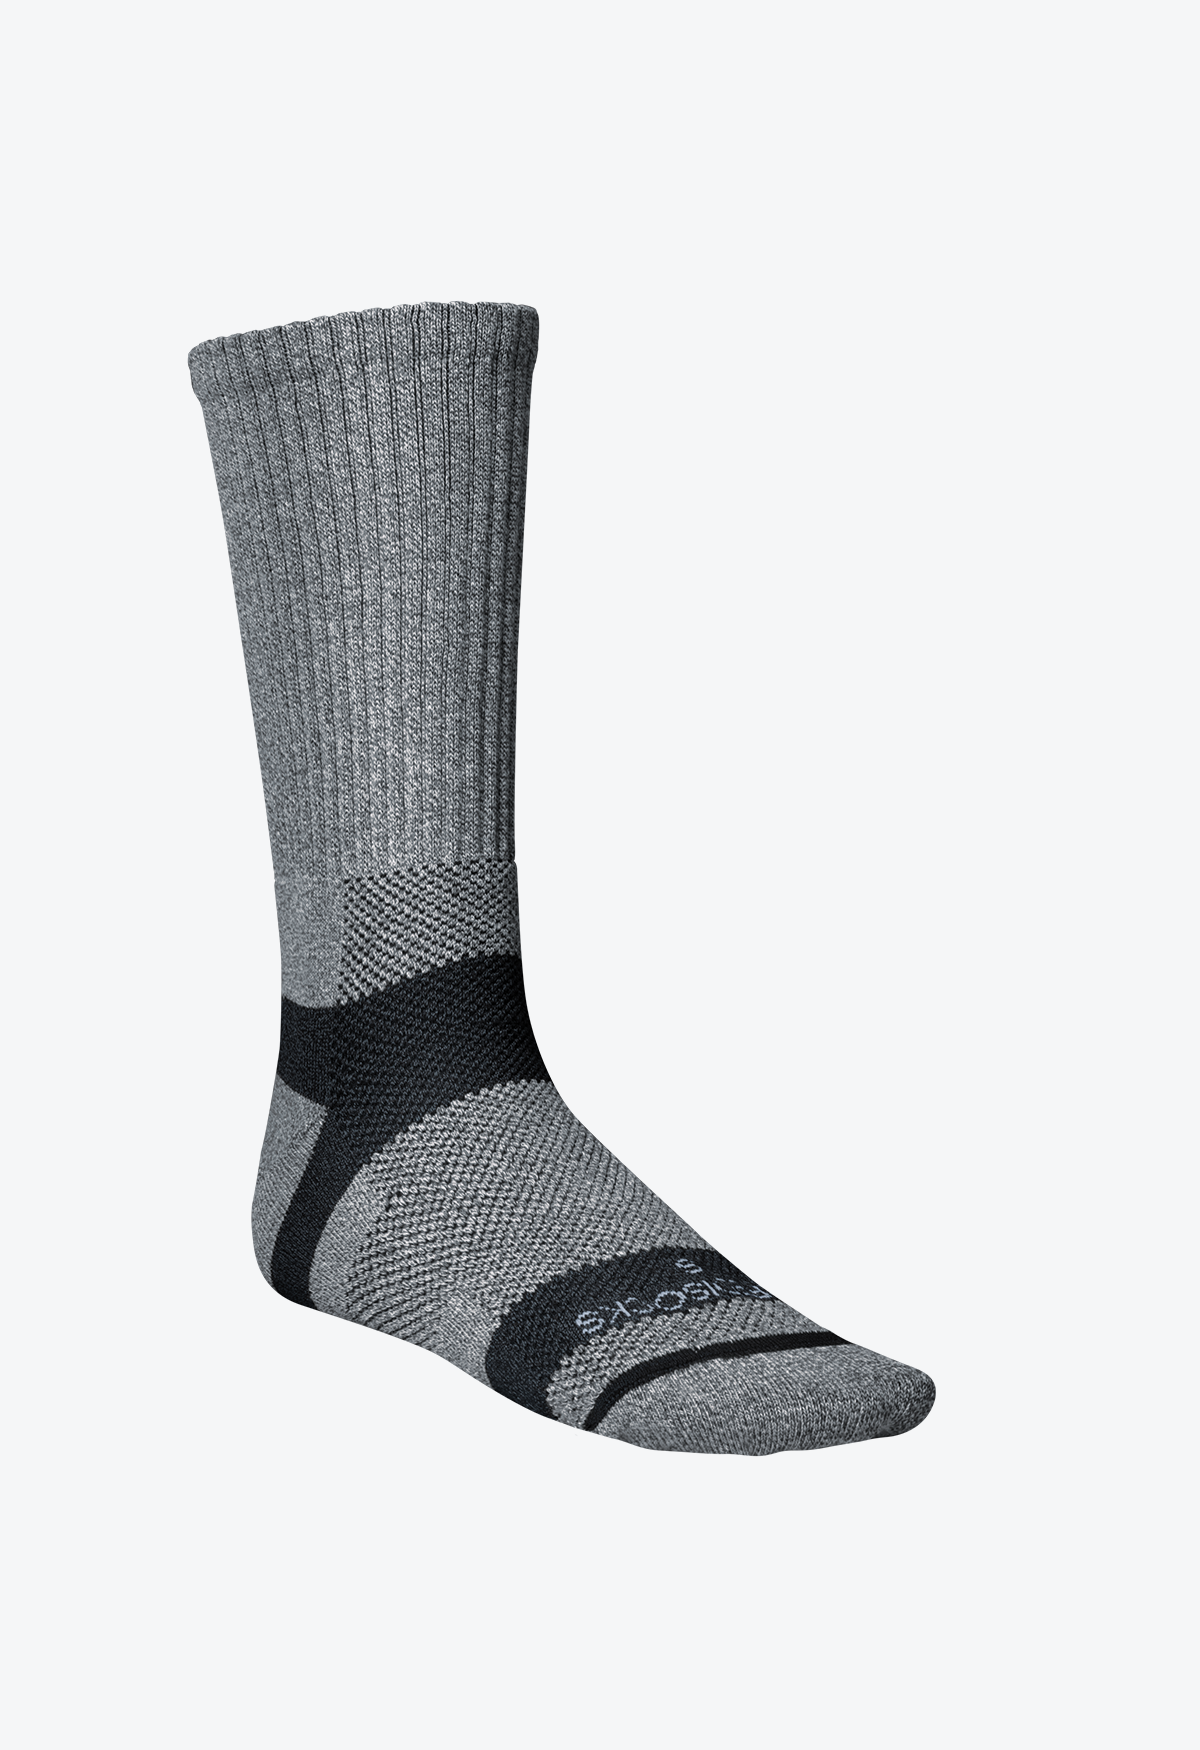 Incrediwear Trek Socks